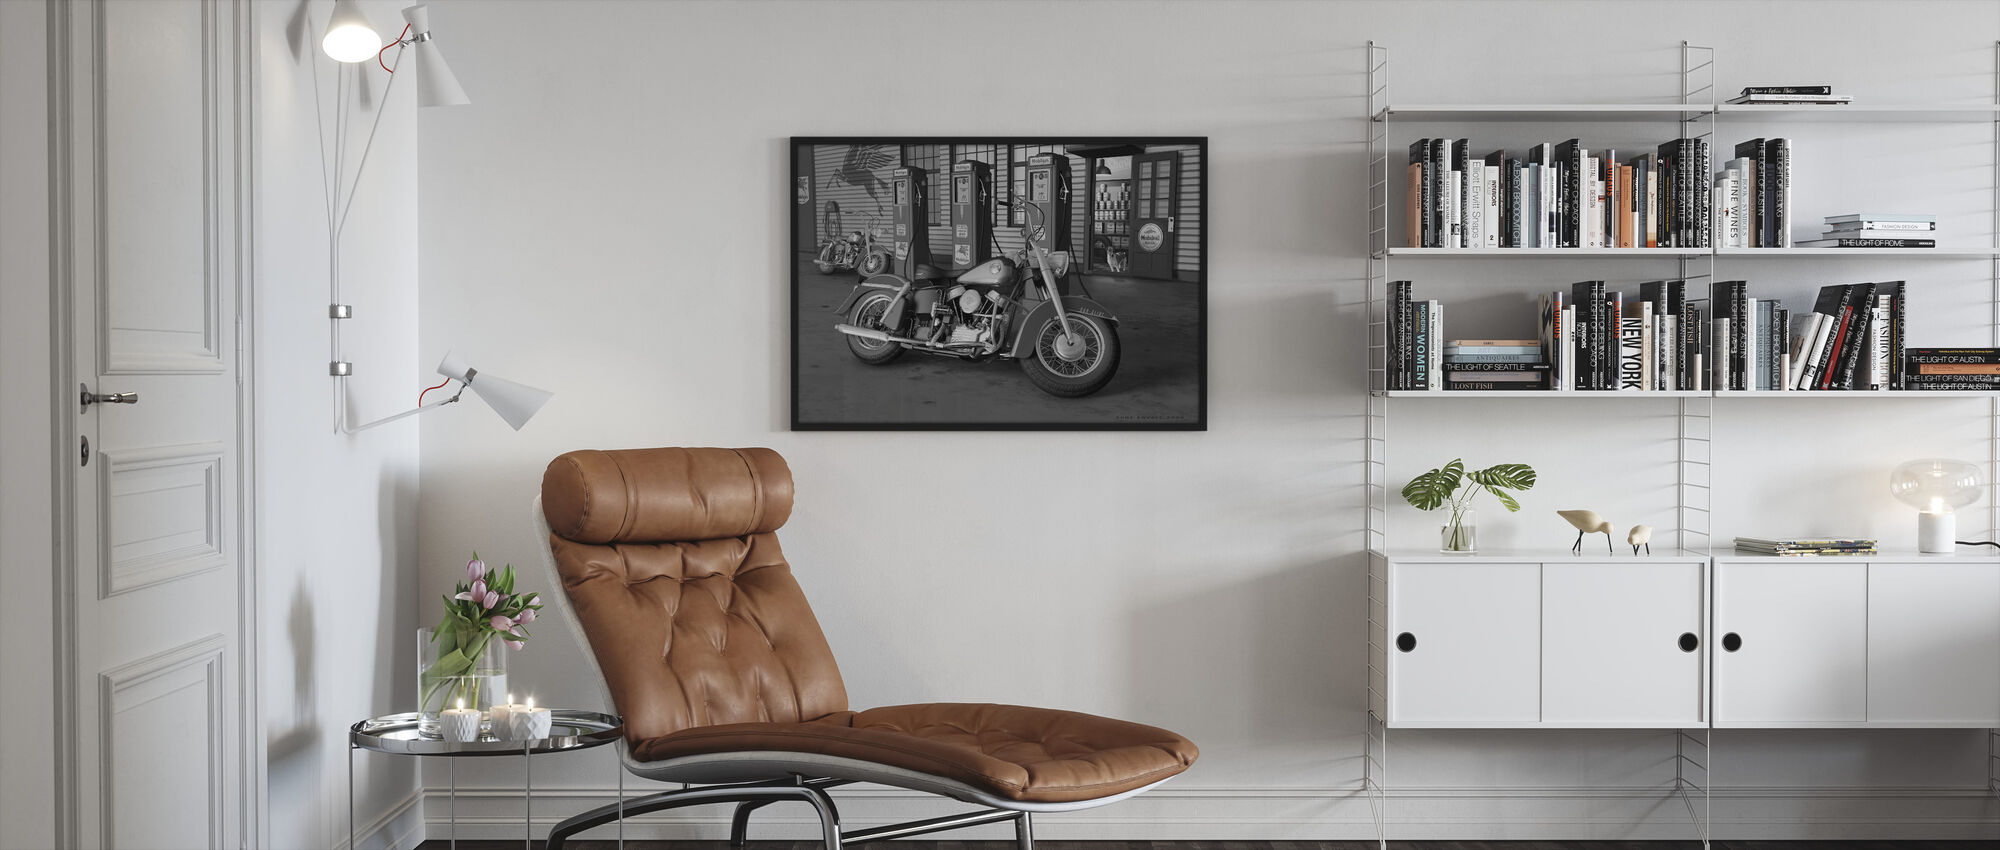 Twilight Dogs BW - Framed print - Living Room